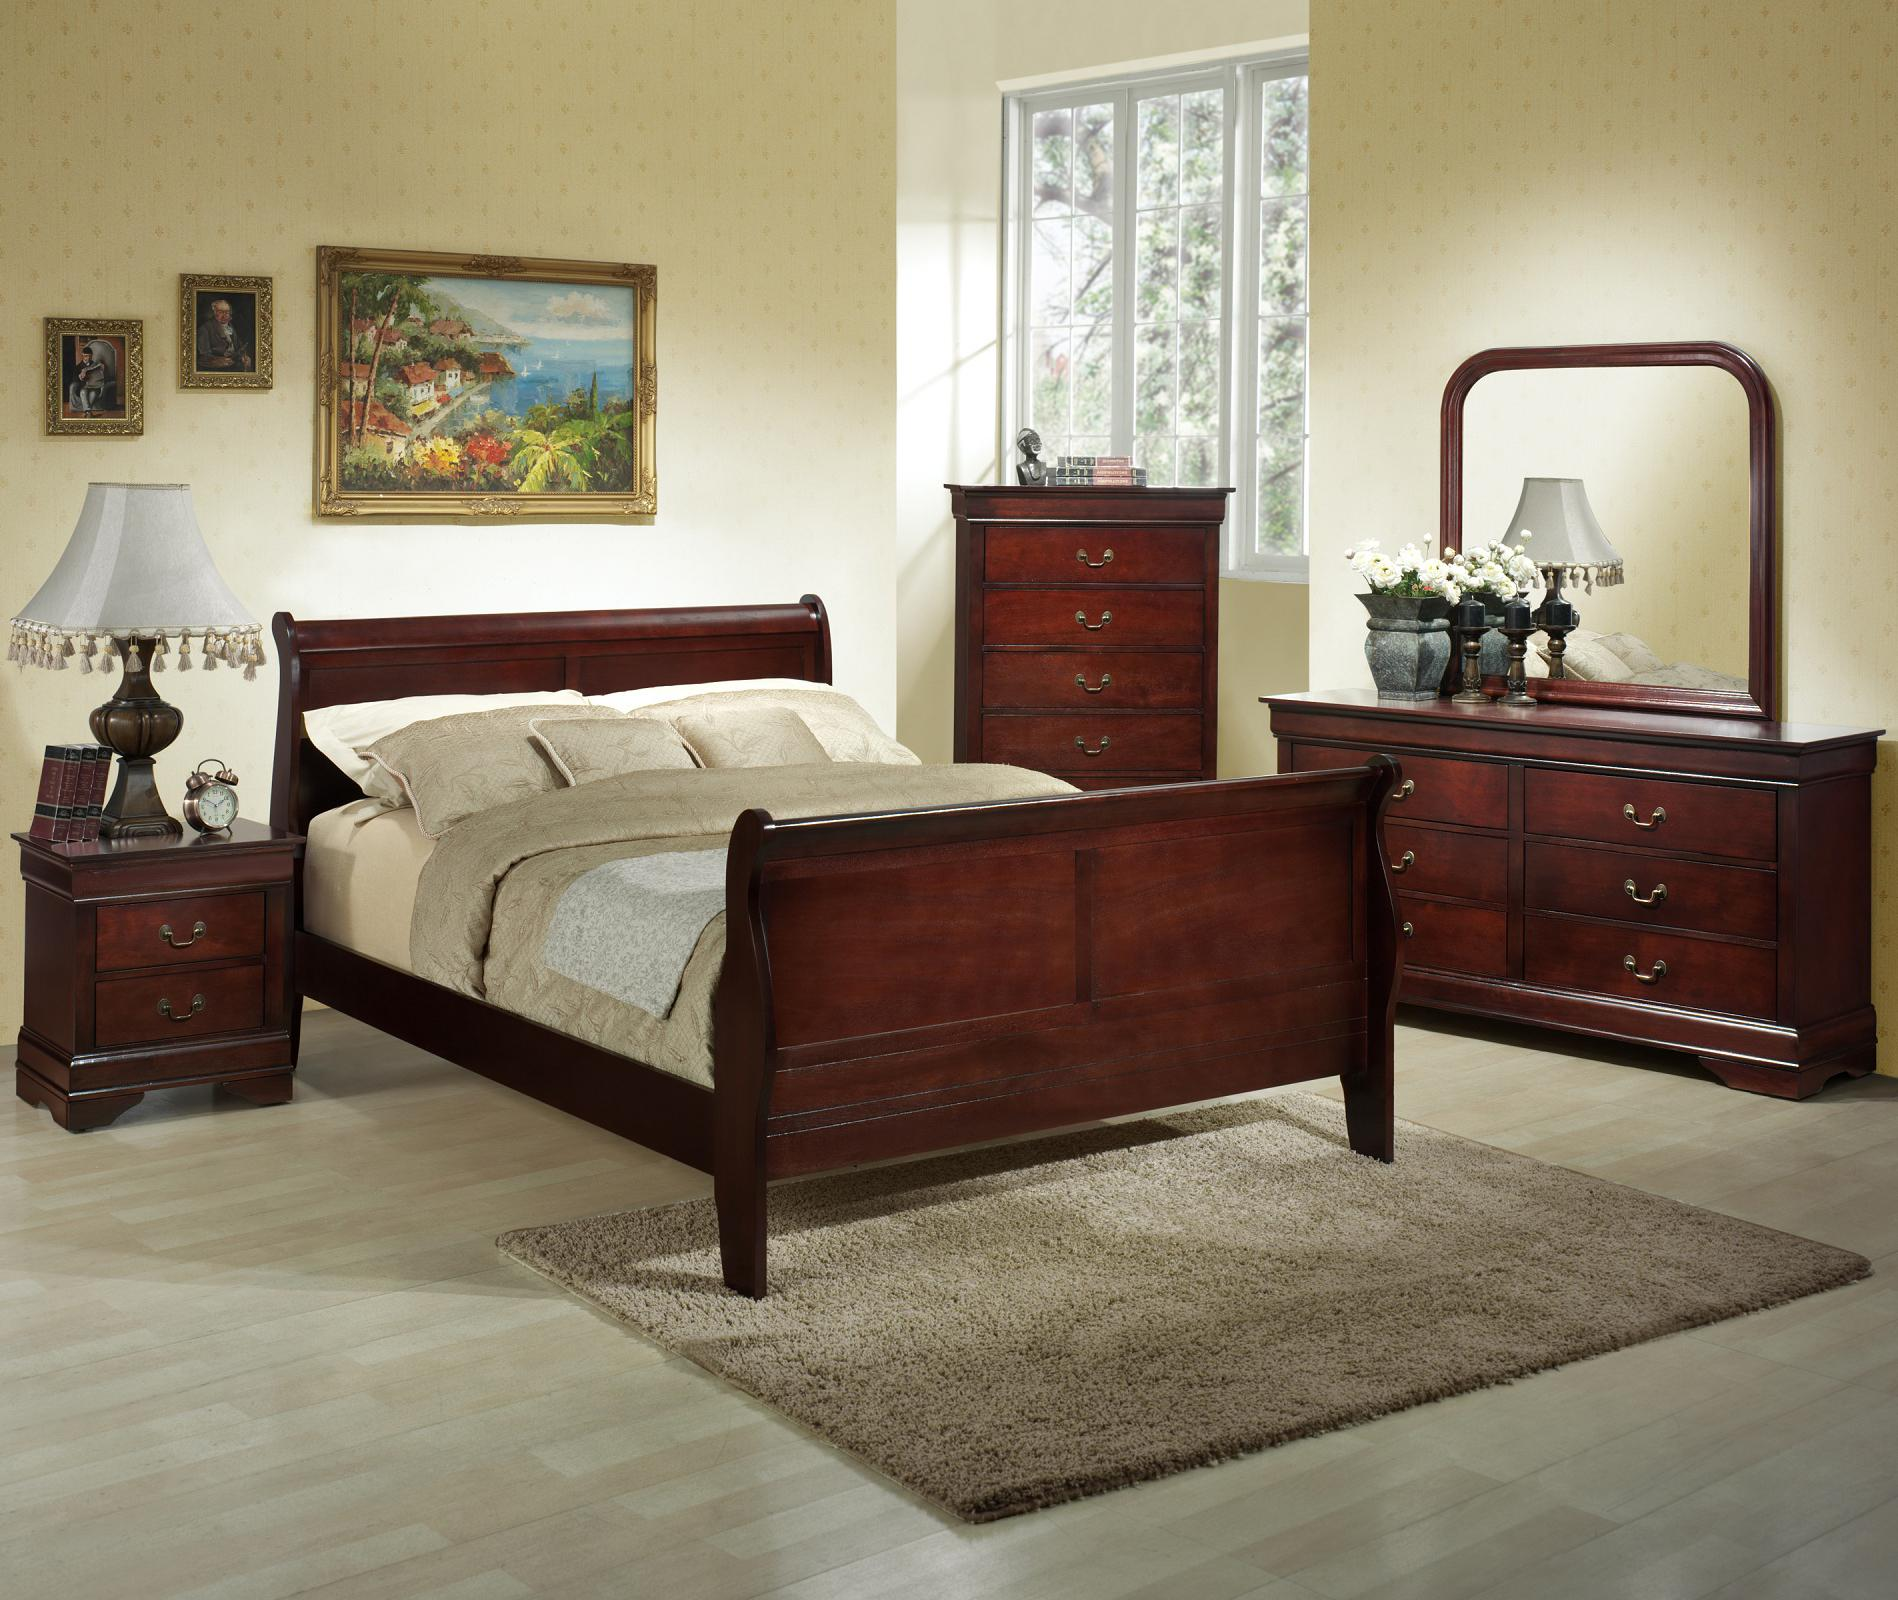 Lifestyle Louis Phillipe Twin Bedroom Group - Item Number: C5933 T Bedroom Group